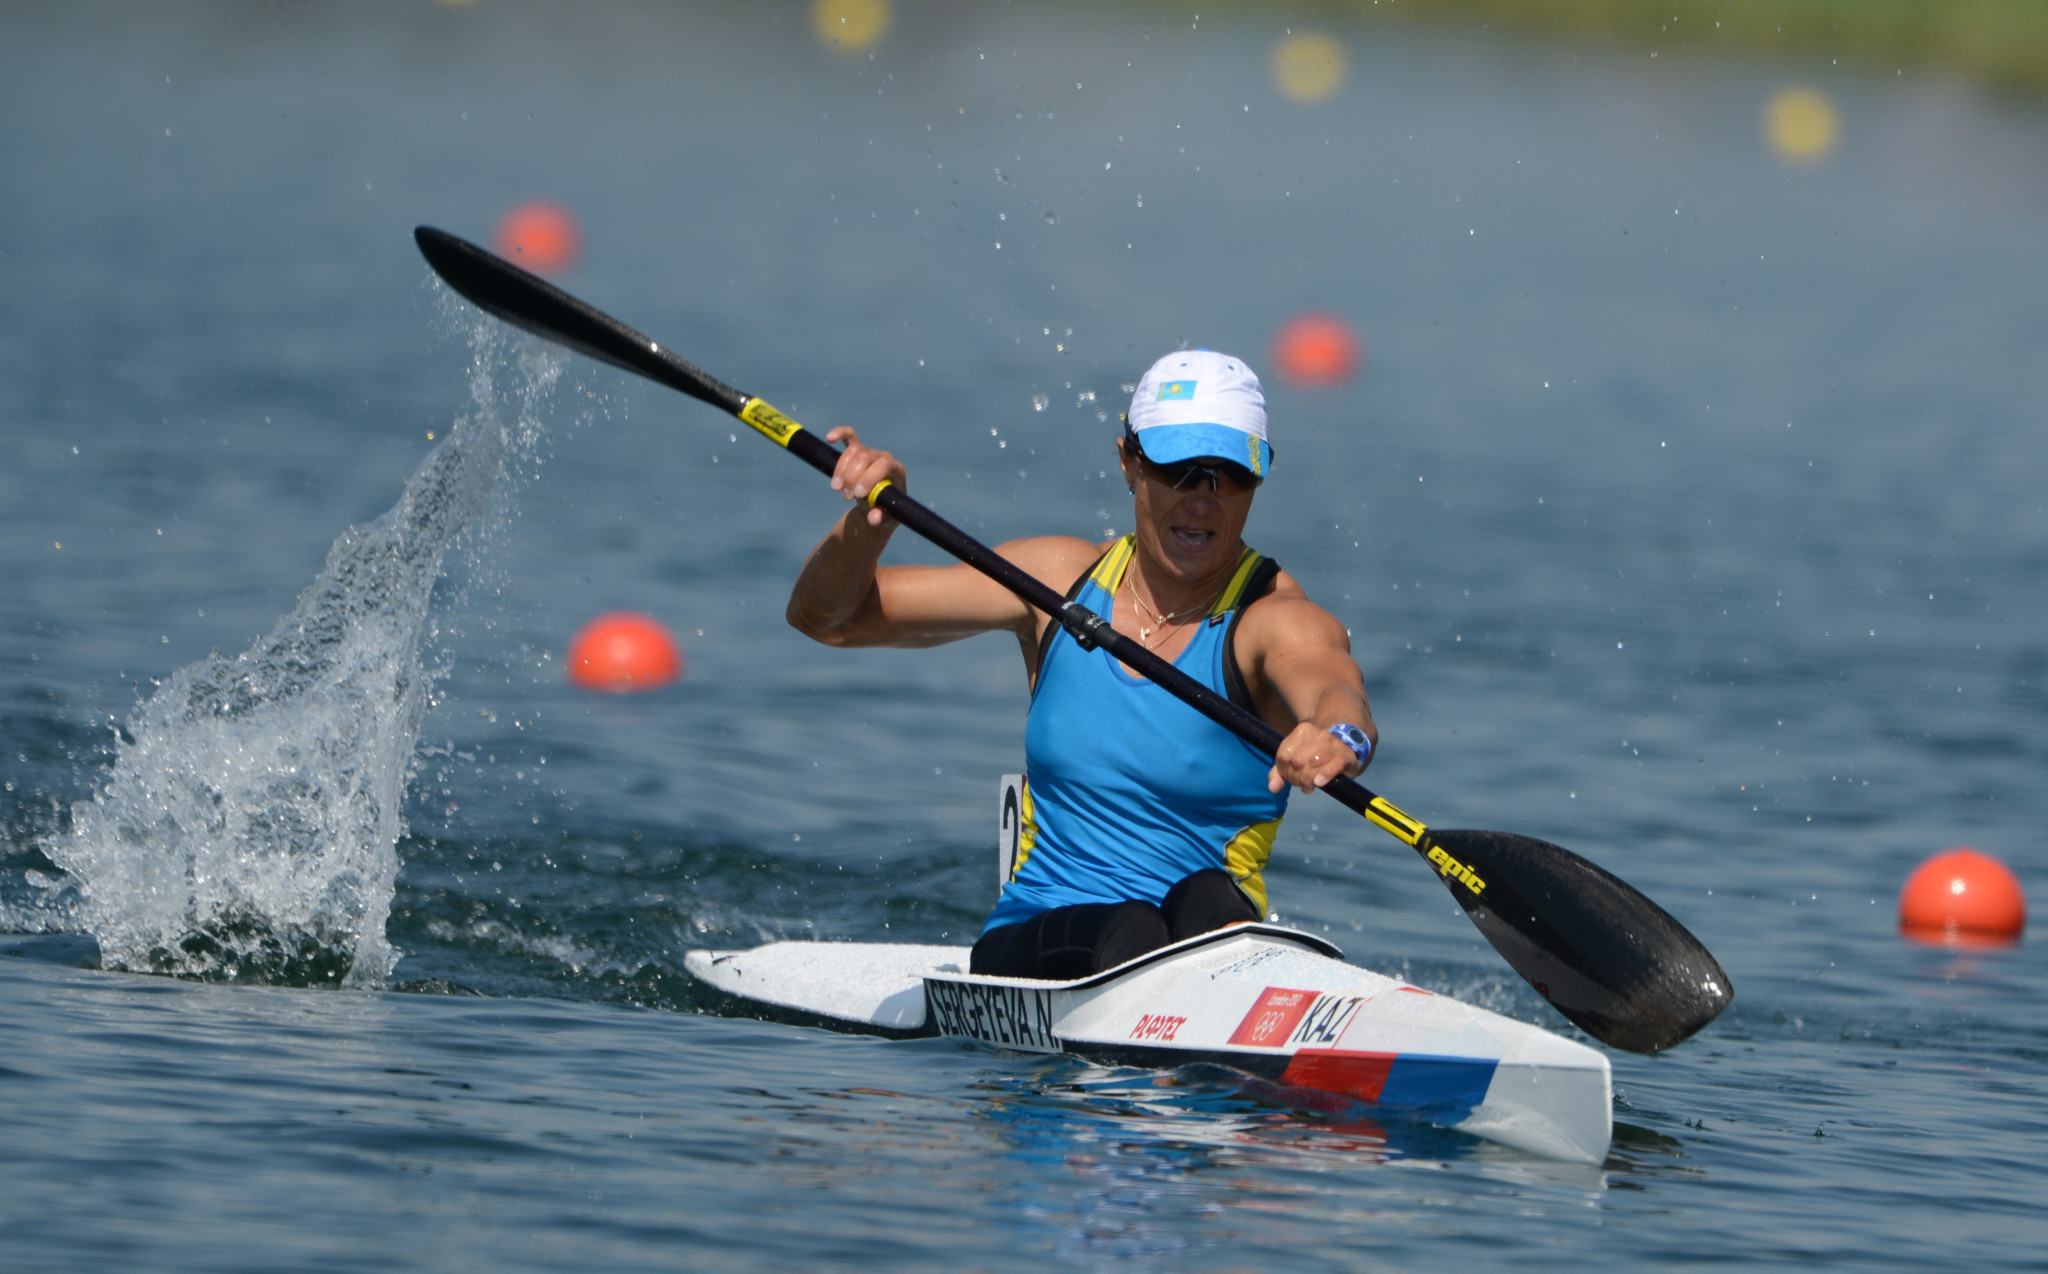 Kazakhstan increase Tokyo 2020 quota at Asian canoe sprint Olympic qualifiers